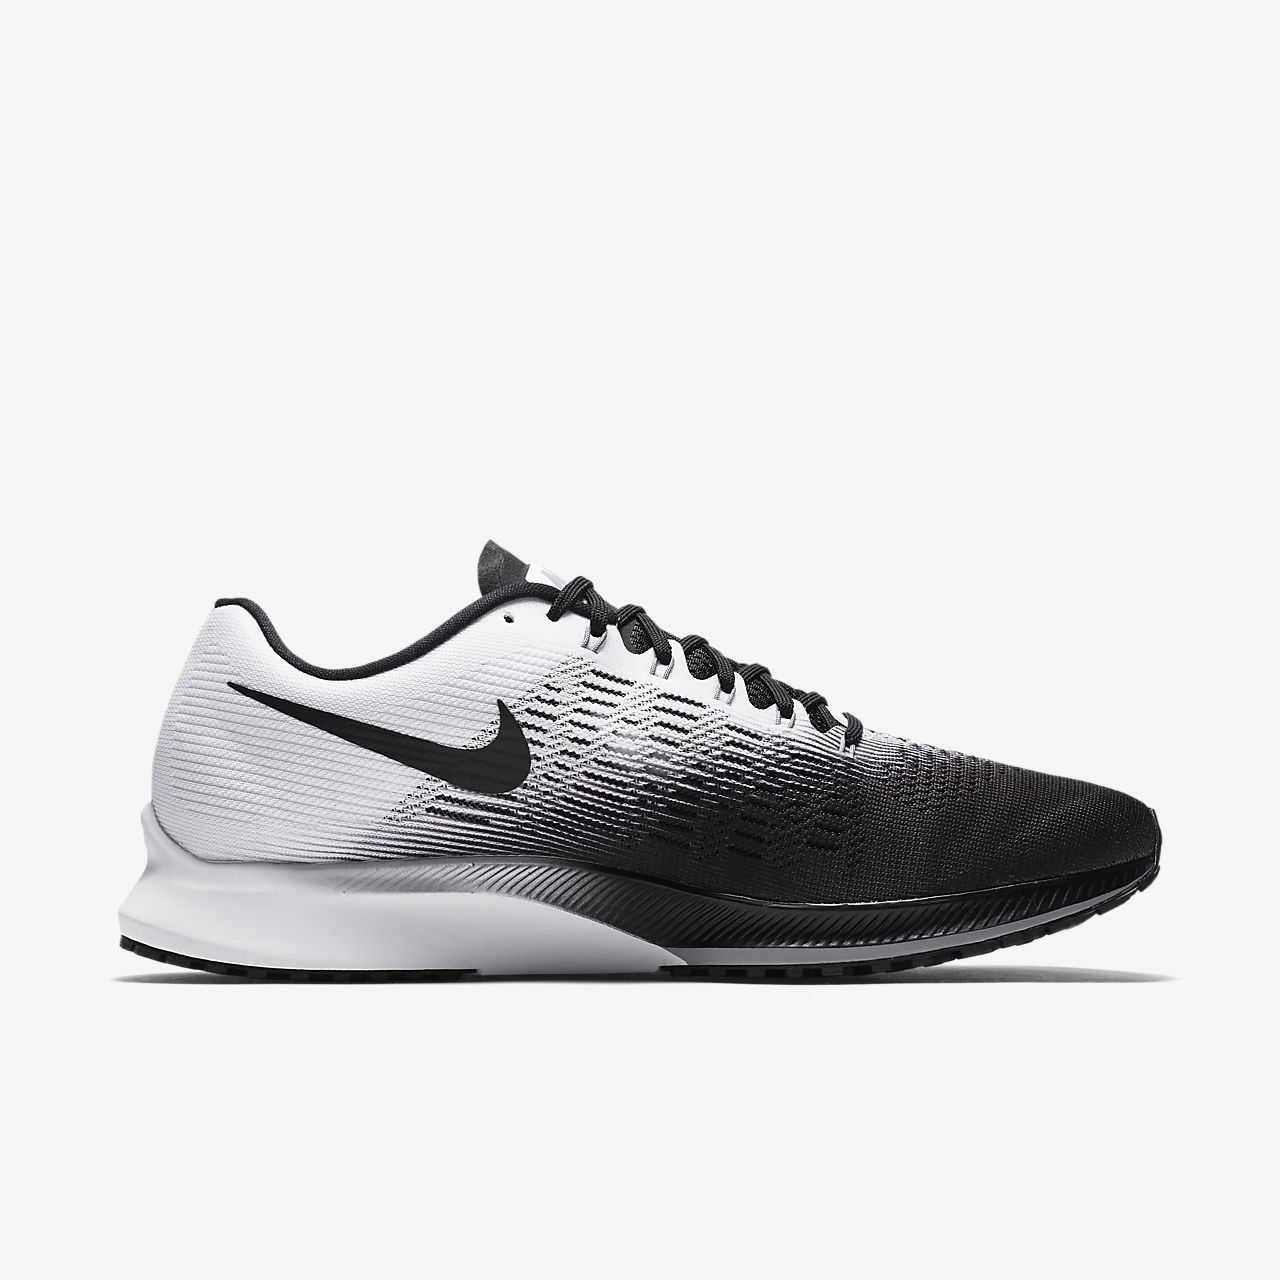 ... Nike Air Zoom Elite 9 Men's Running Shoe